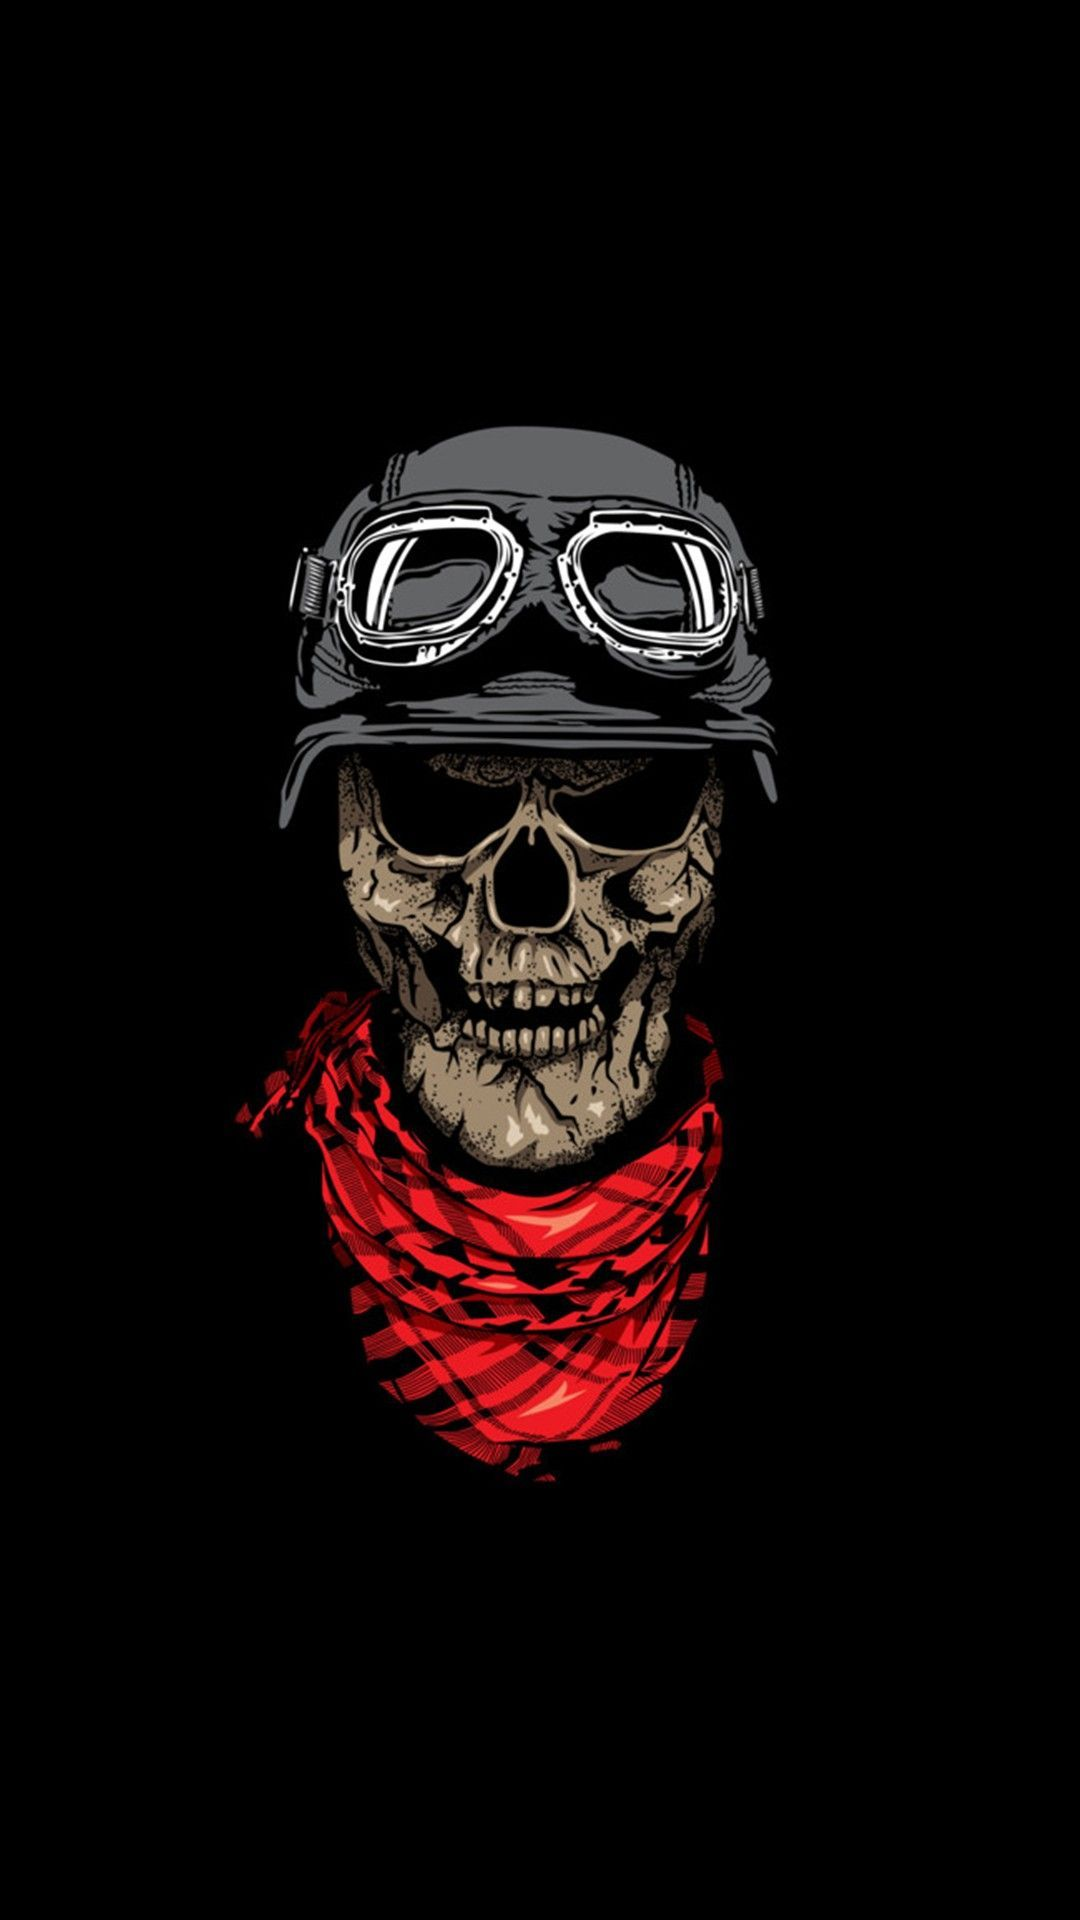 Head Illustration Eyewear Skull Font Helmet Skull Wallpaper